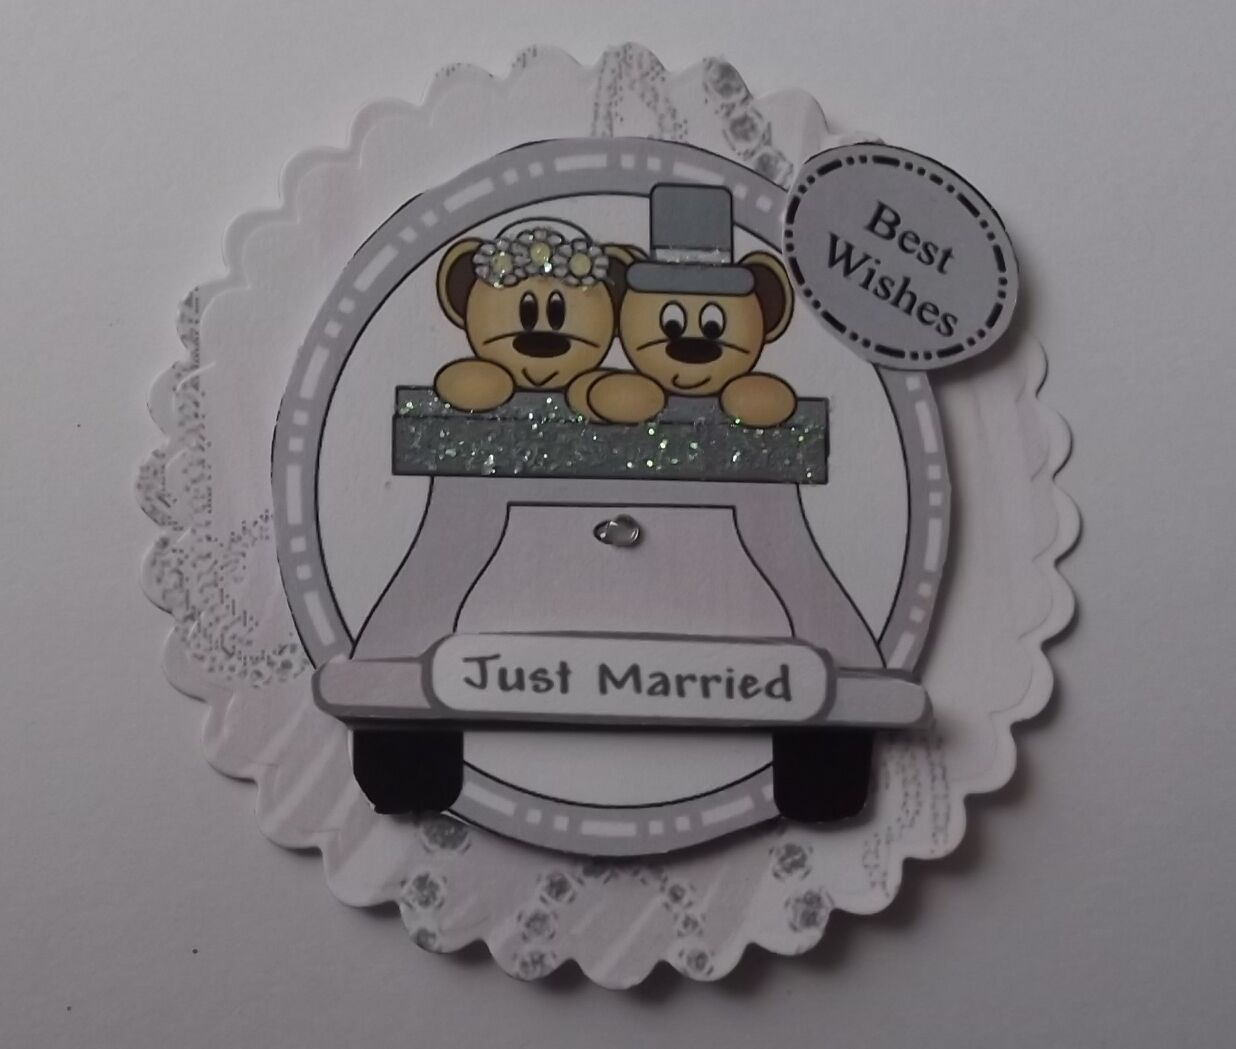 Pack 2 Boda Just Married Coche ADORNOS PARA TARJETAS Y MANUALIDADES